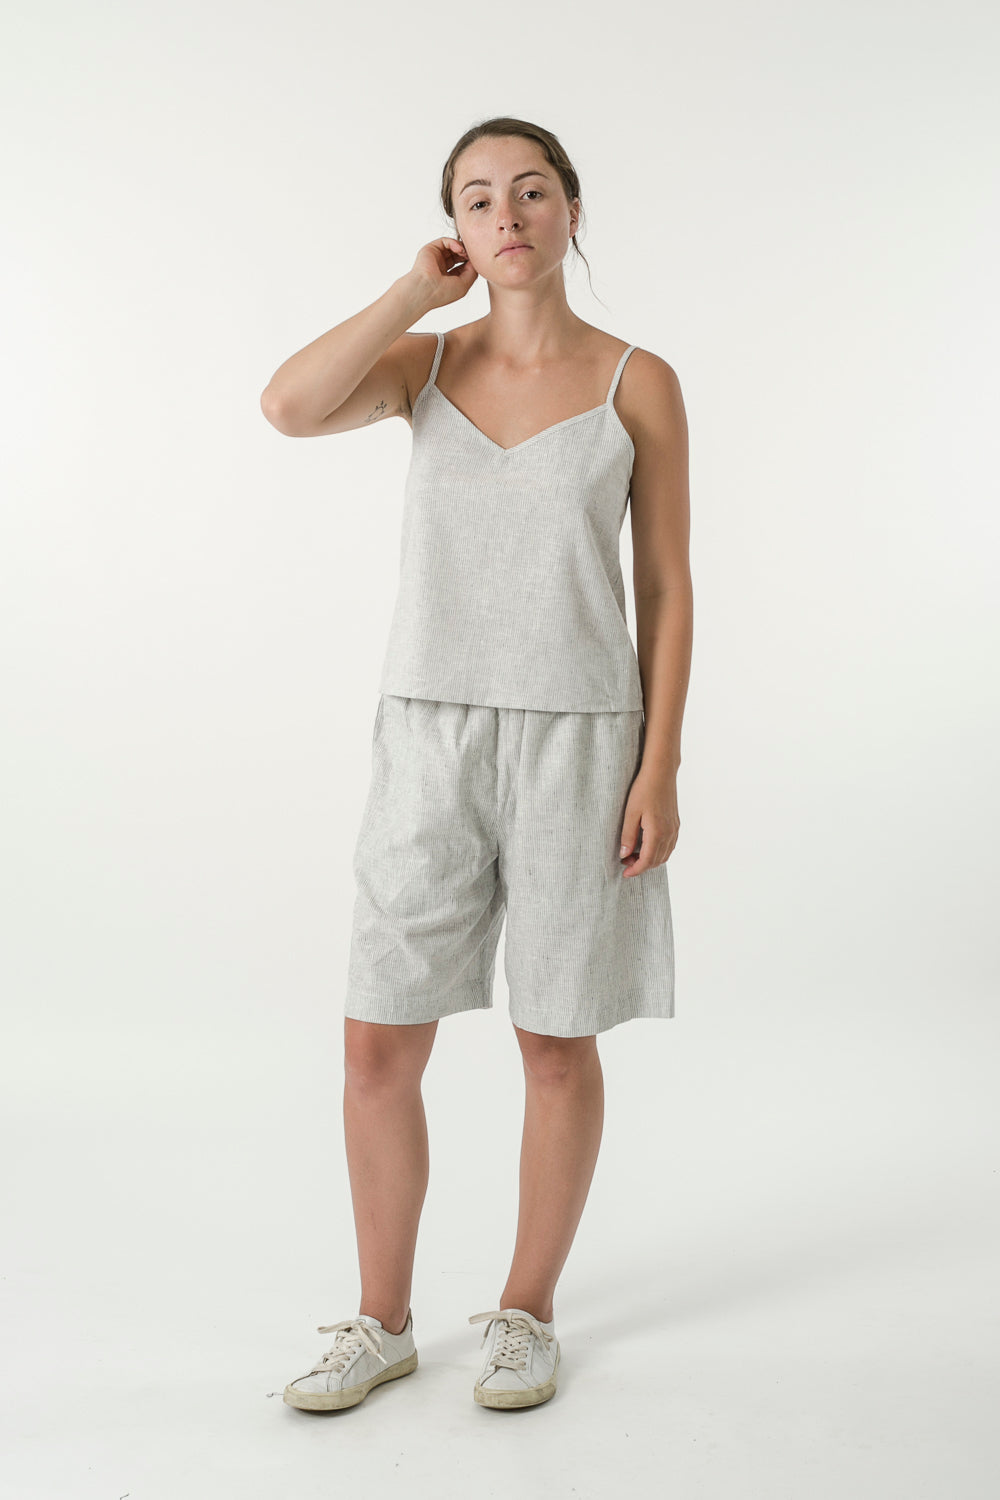 UNISEX HEMP LINEN BOARD SHORTS